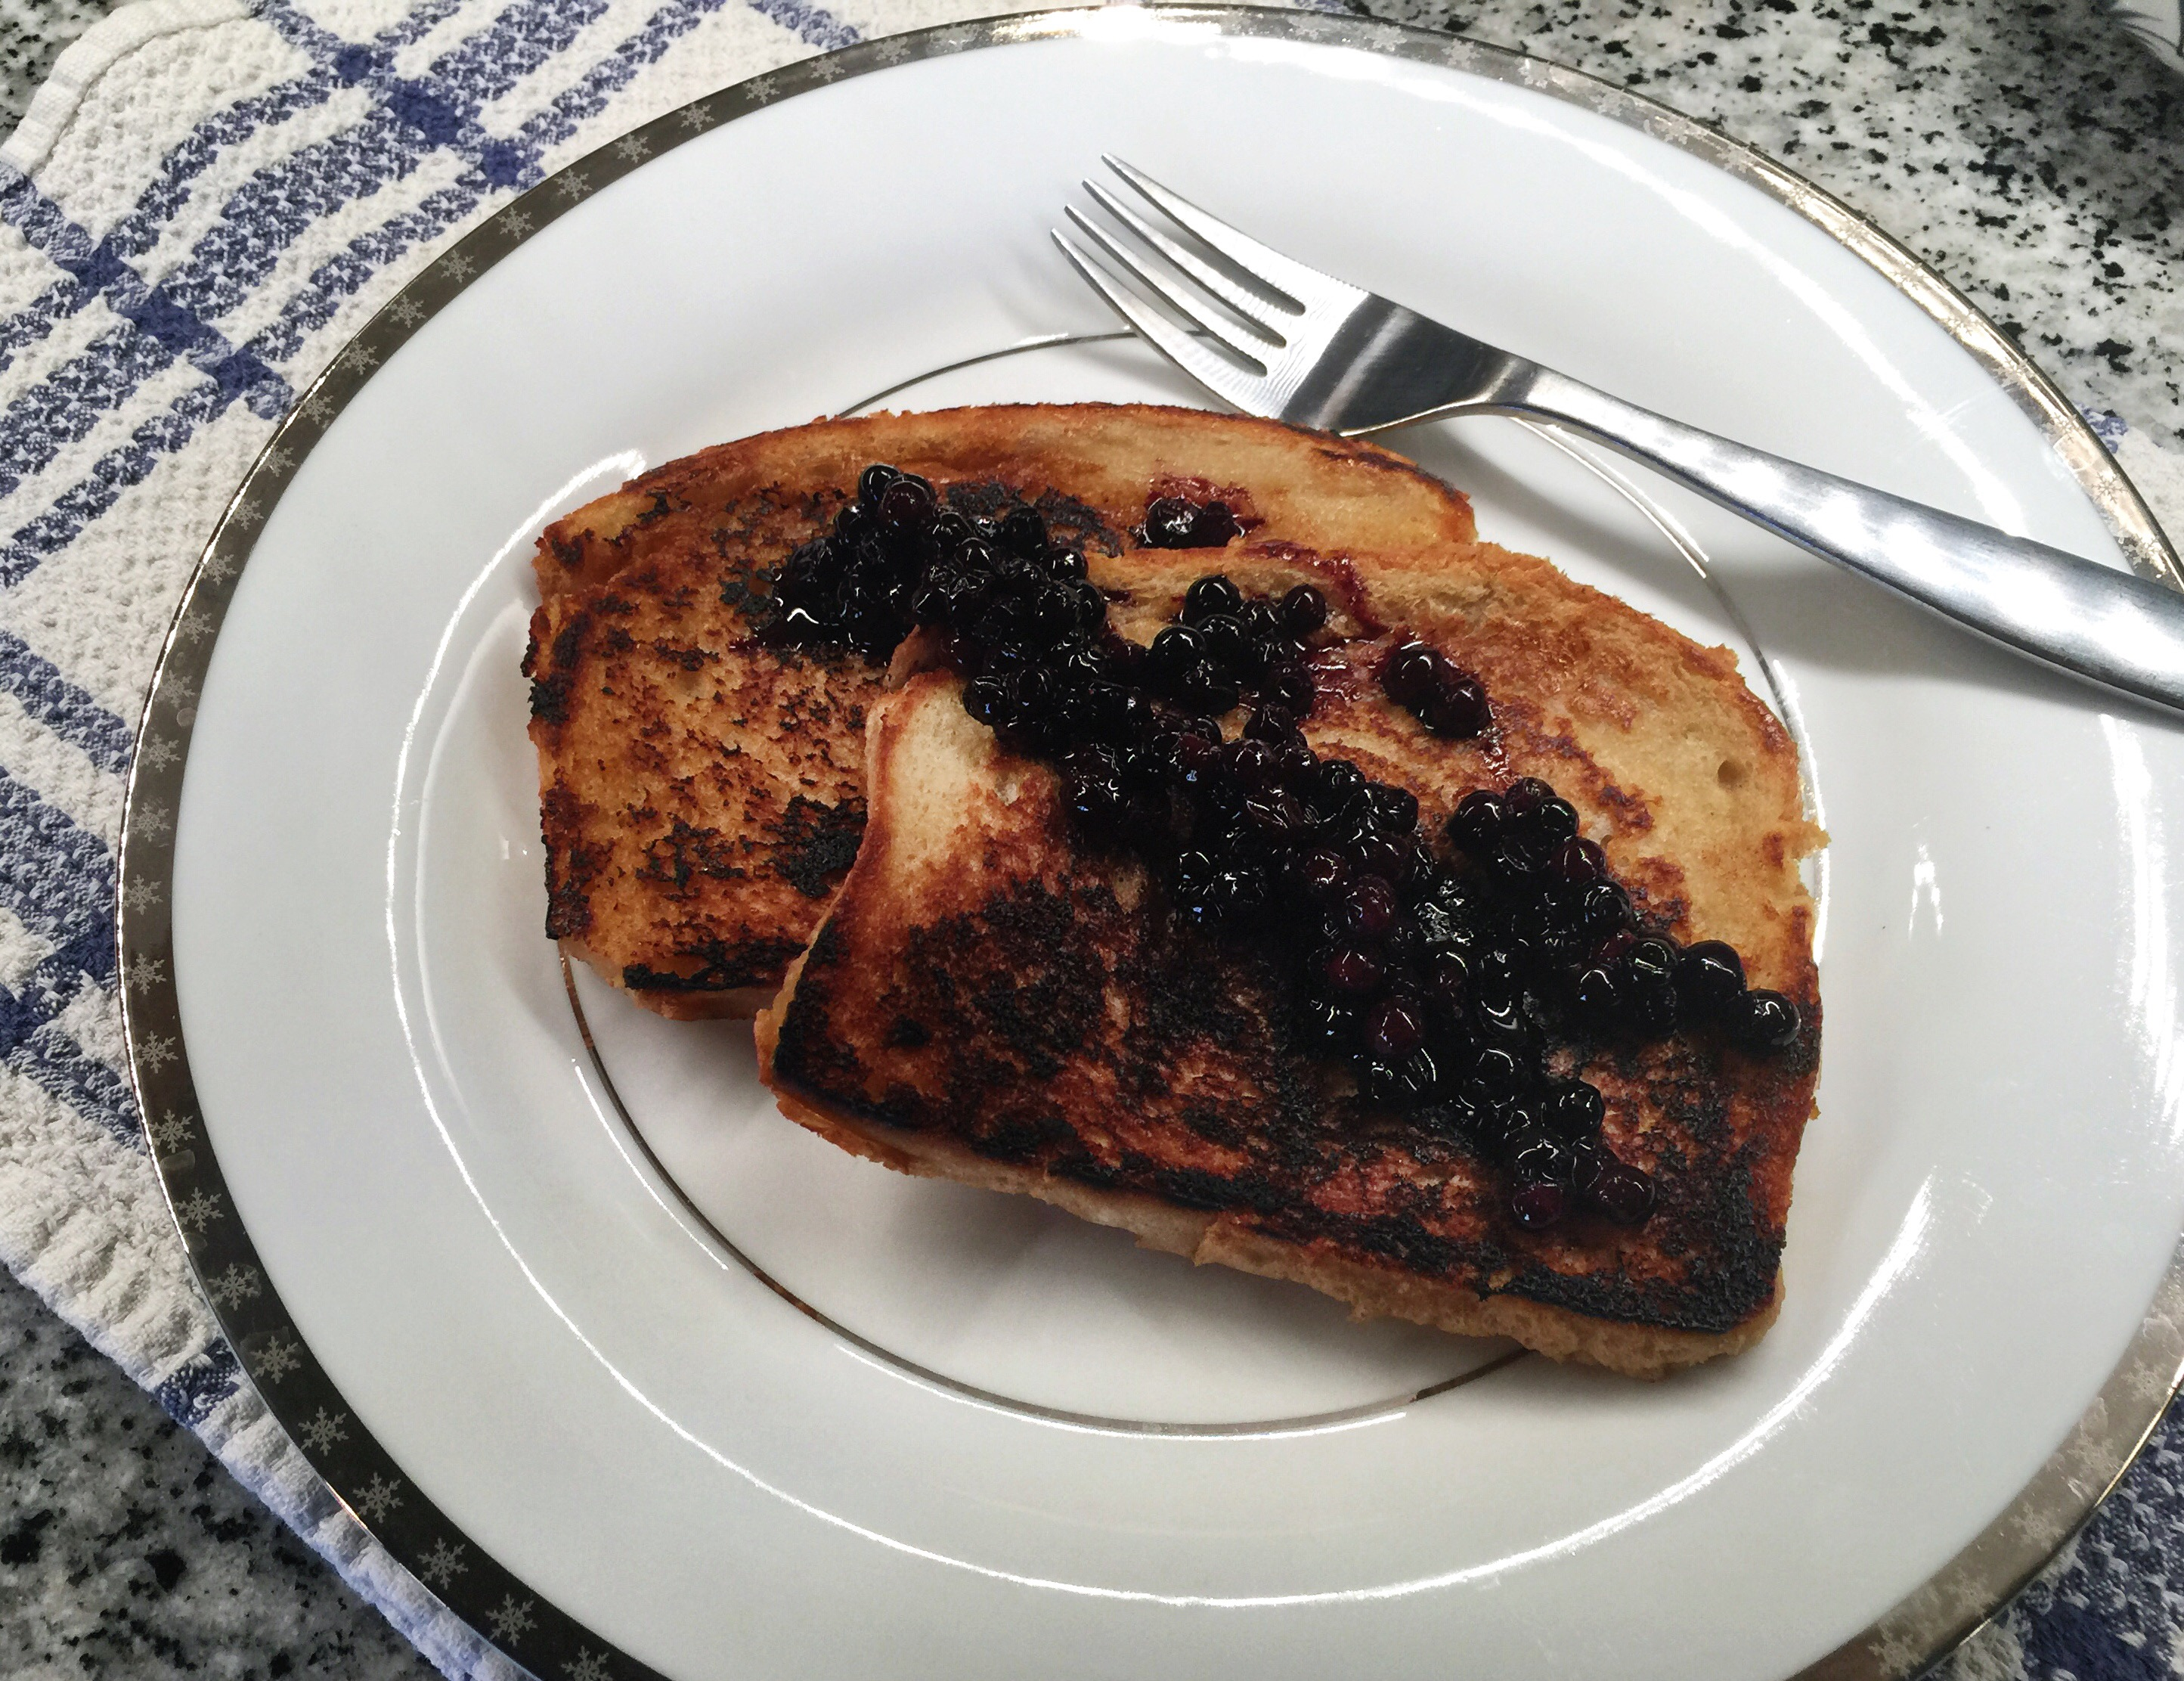 Vegan French Toast Topped with Blueberries